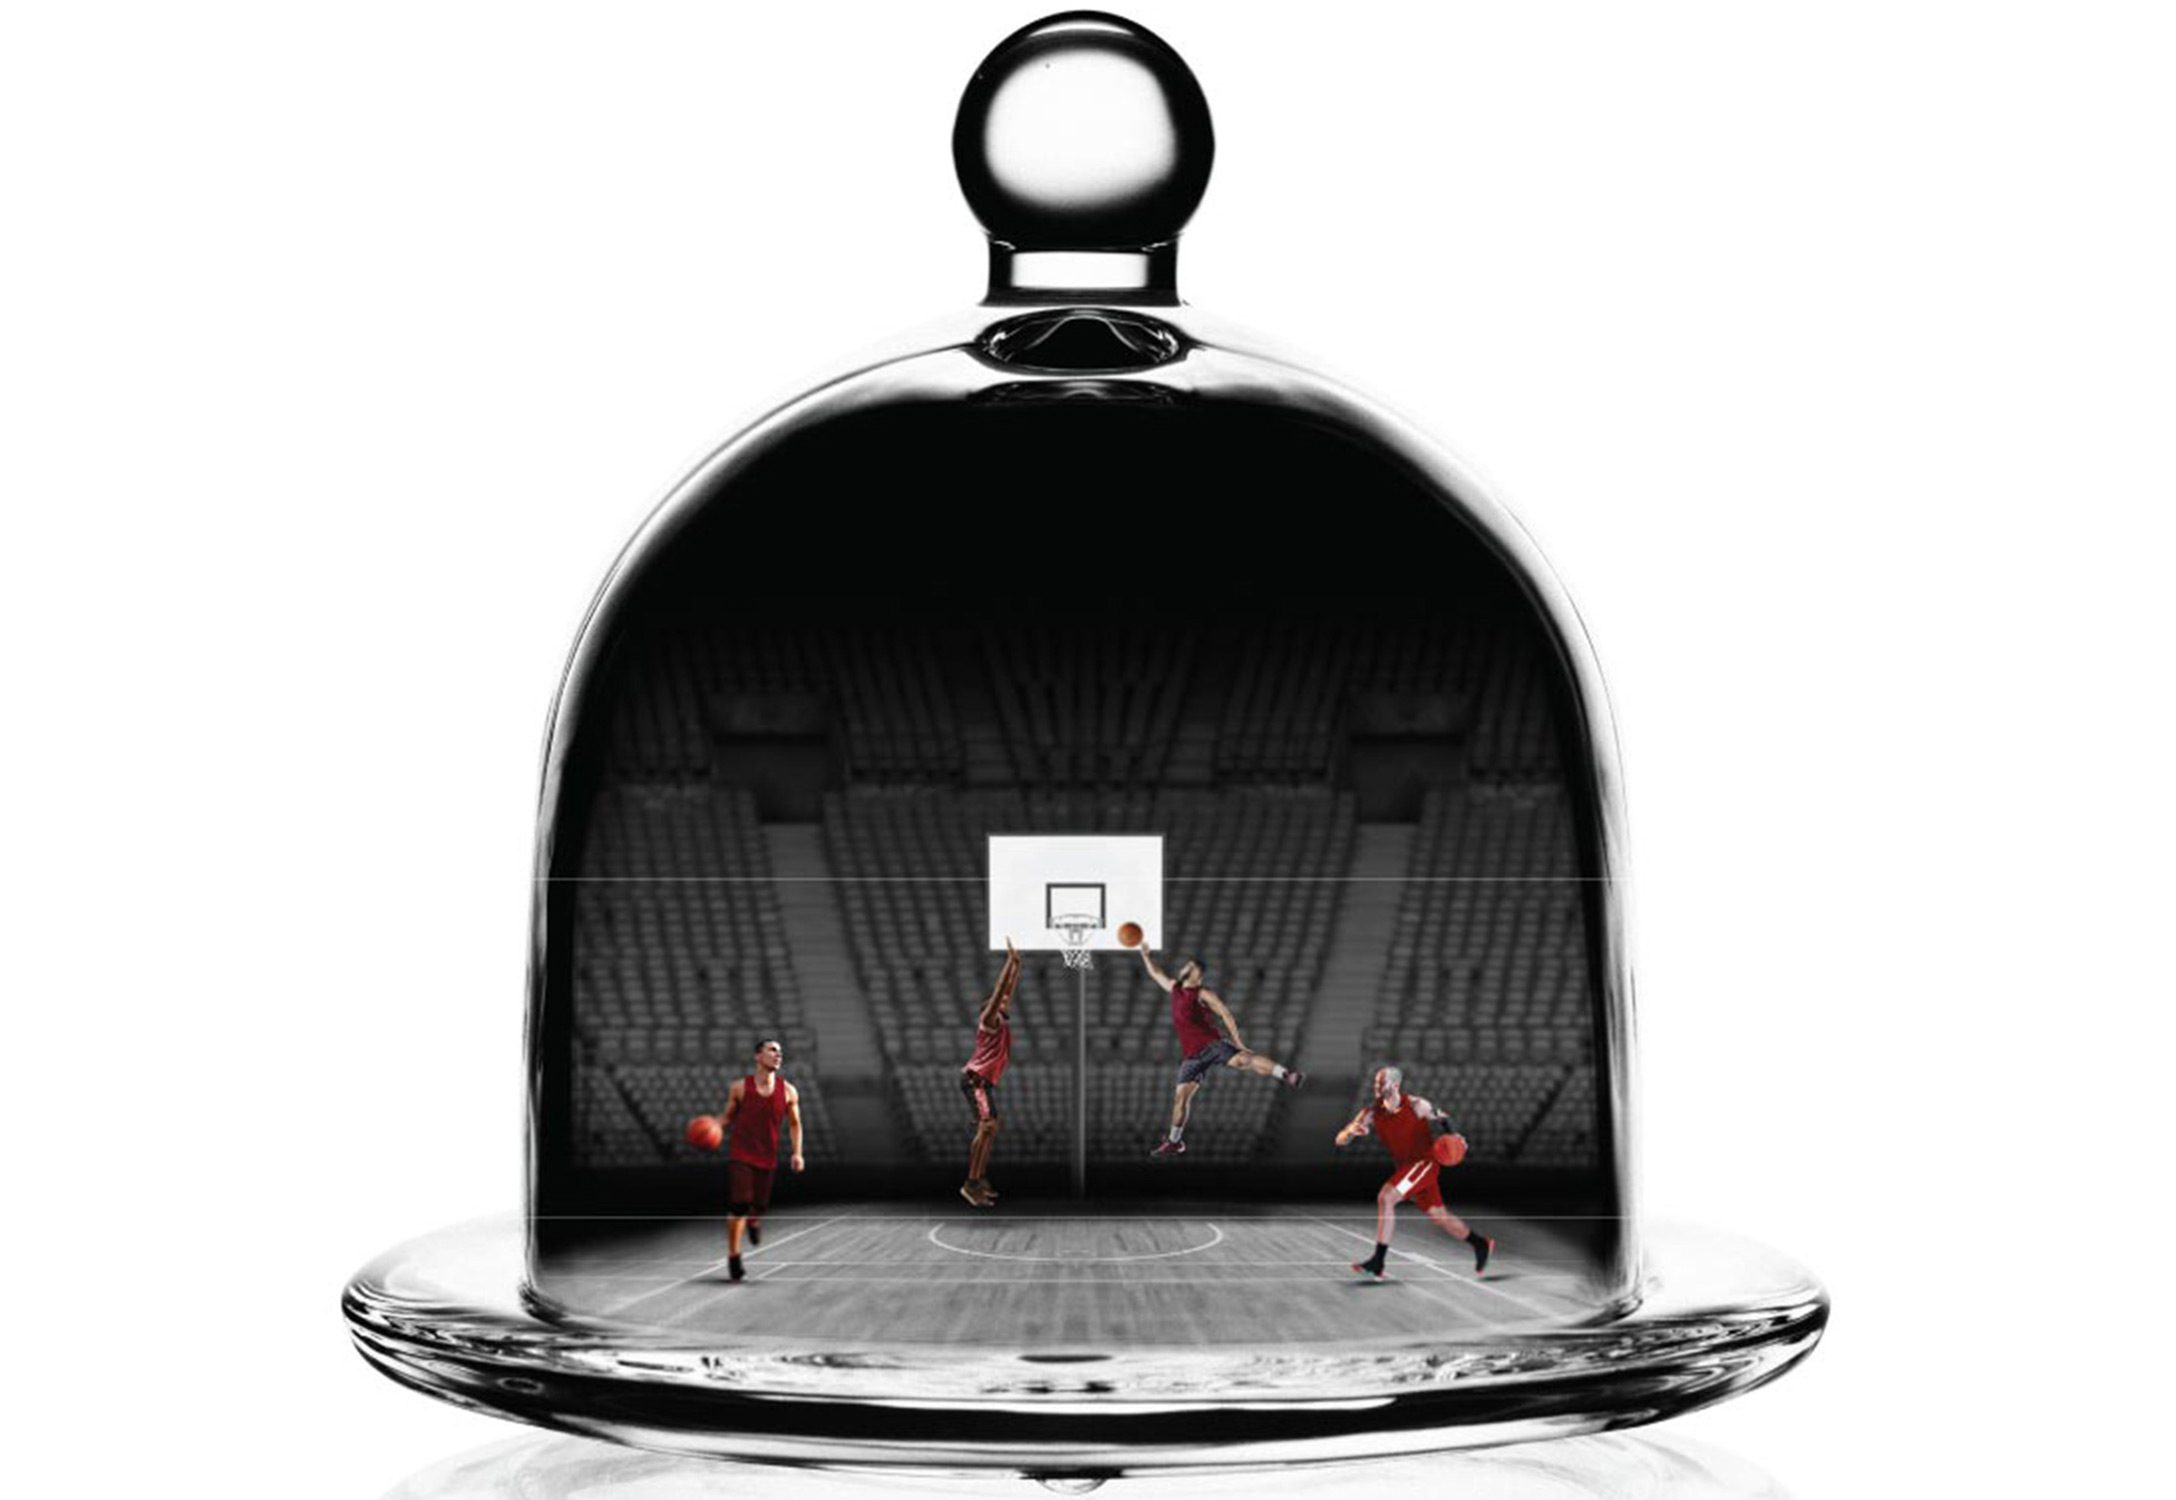 Bell shaped container with basketball players on a court and empty stands behind.